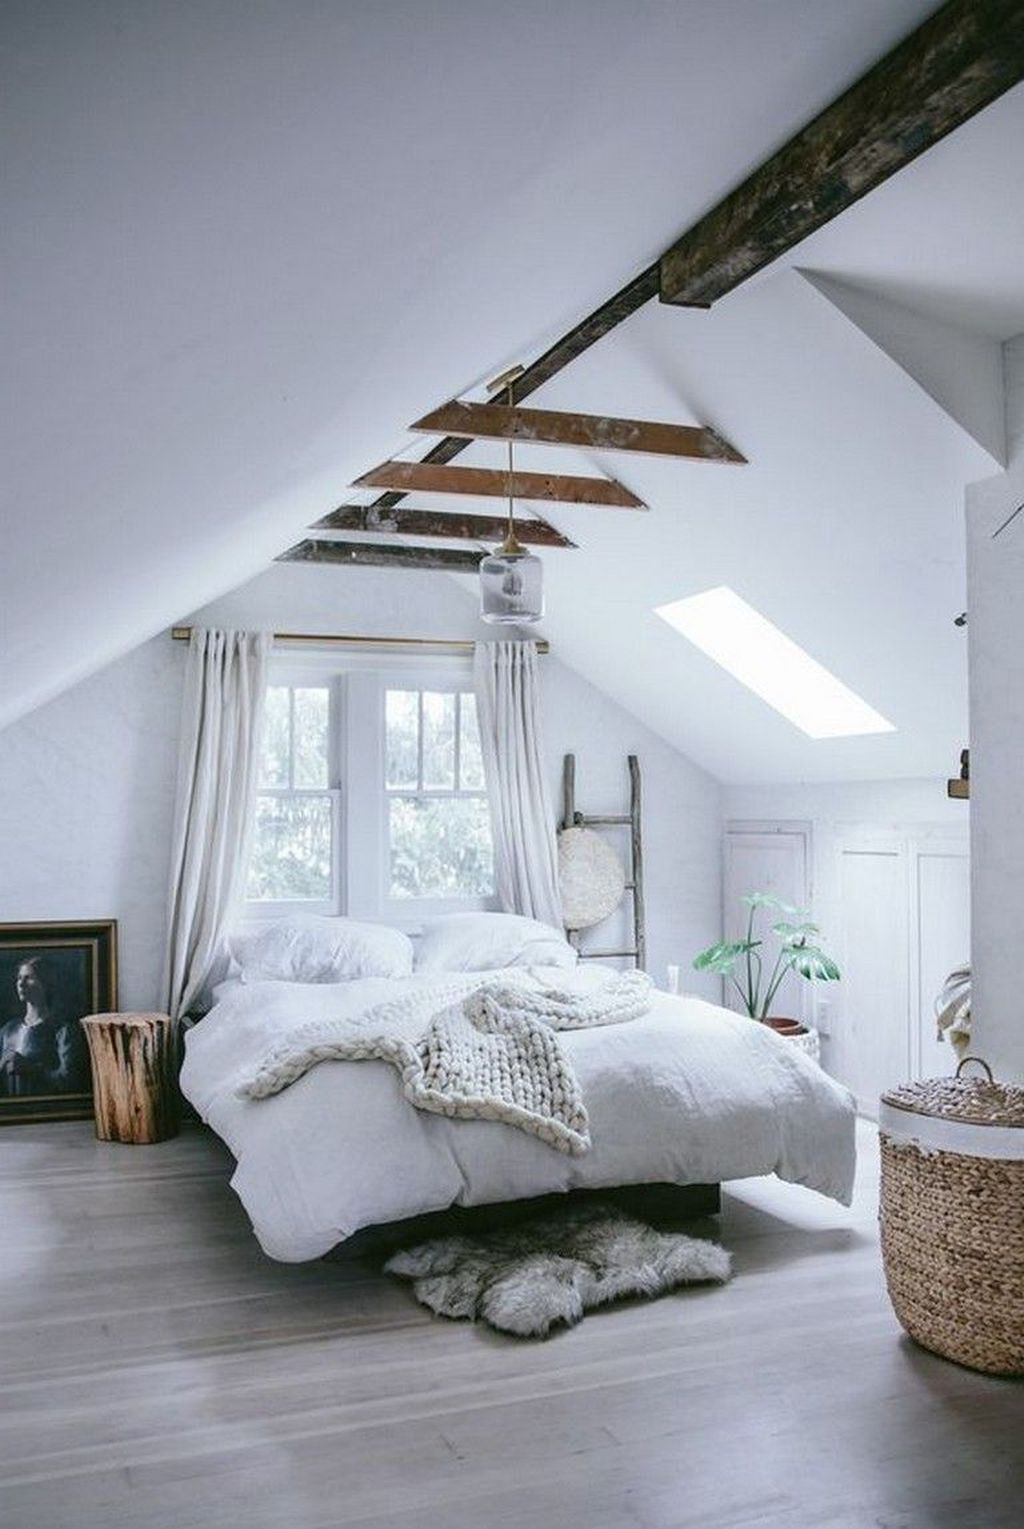 30 Relaxing Small Loft Bedroom Designs Small Loft Bedroom